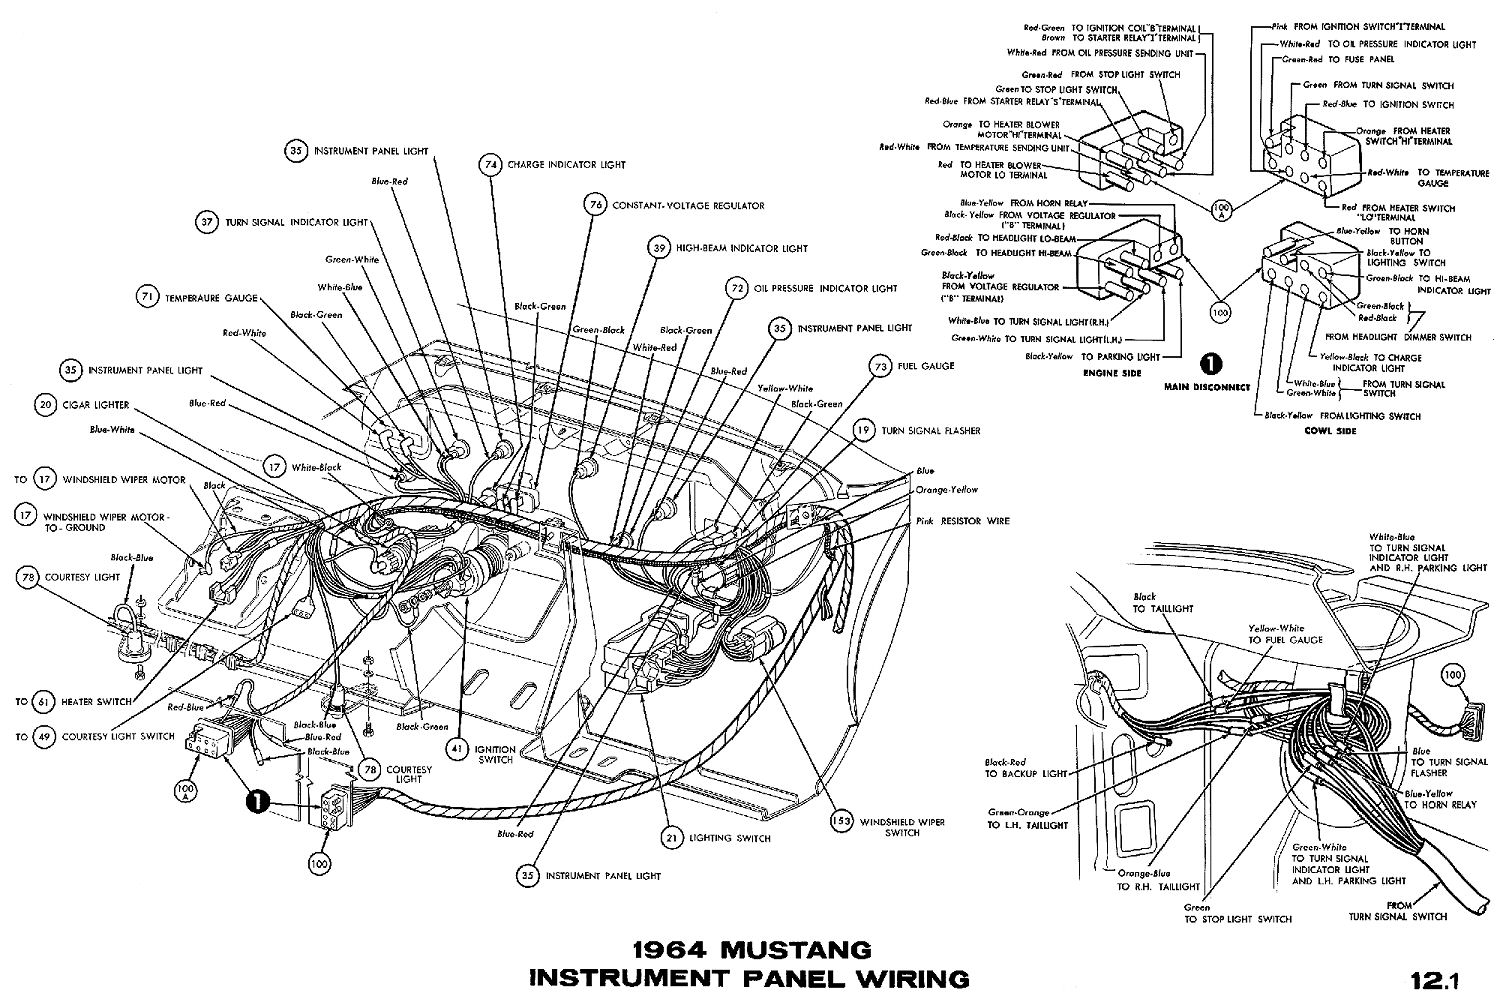 1964 mustang wiring diagrams average joe restoration 85 ford mustang alternator diagram wiring schematic 1970 mustang instrument diagram wiring schematic